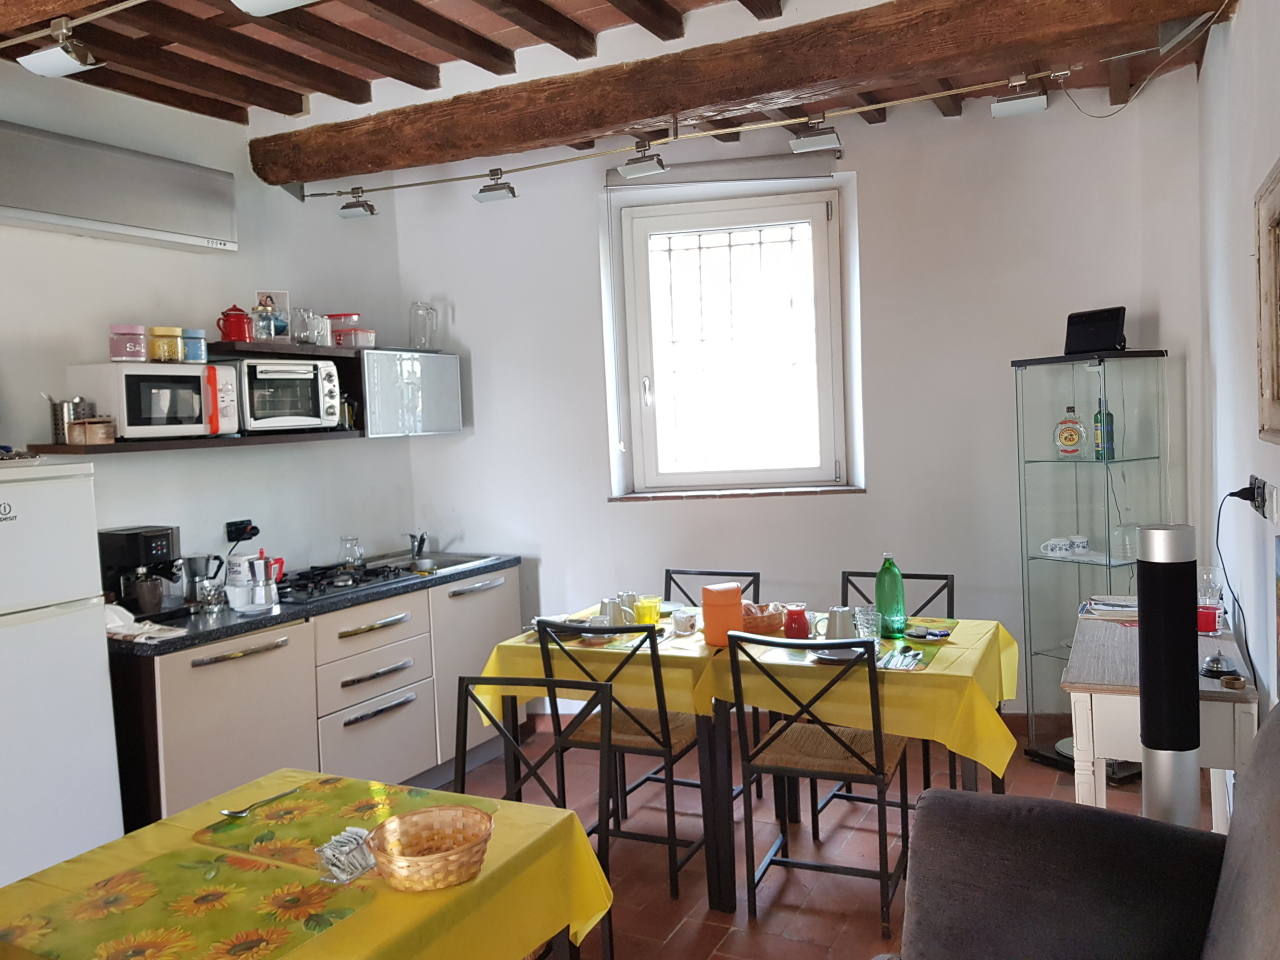 Bed & Breakfast a Sant'Anna, Lucca Rif. 11351813